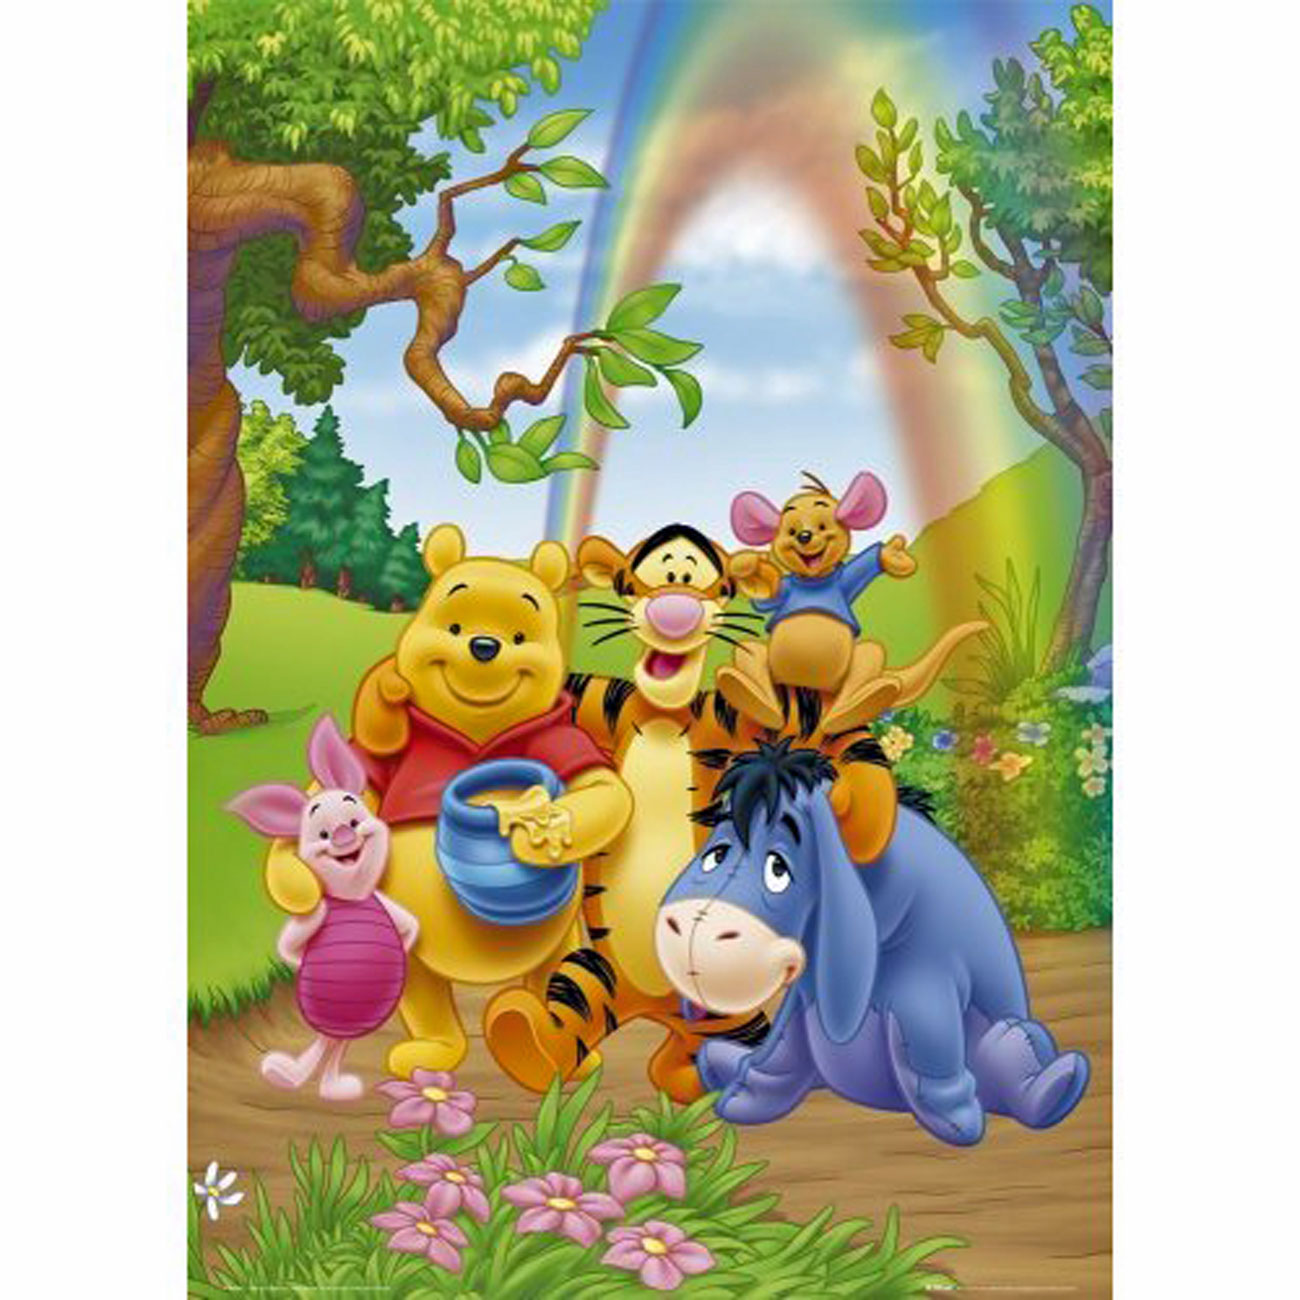 posters de winnie pooh imagui. Black Bedroom Furniture Sets. Home Design Ideas